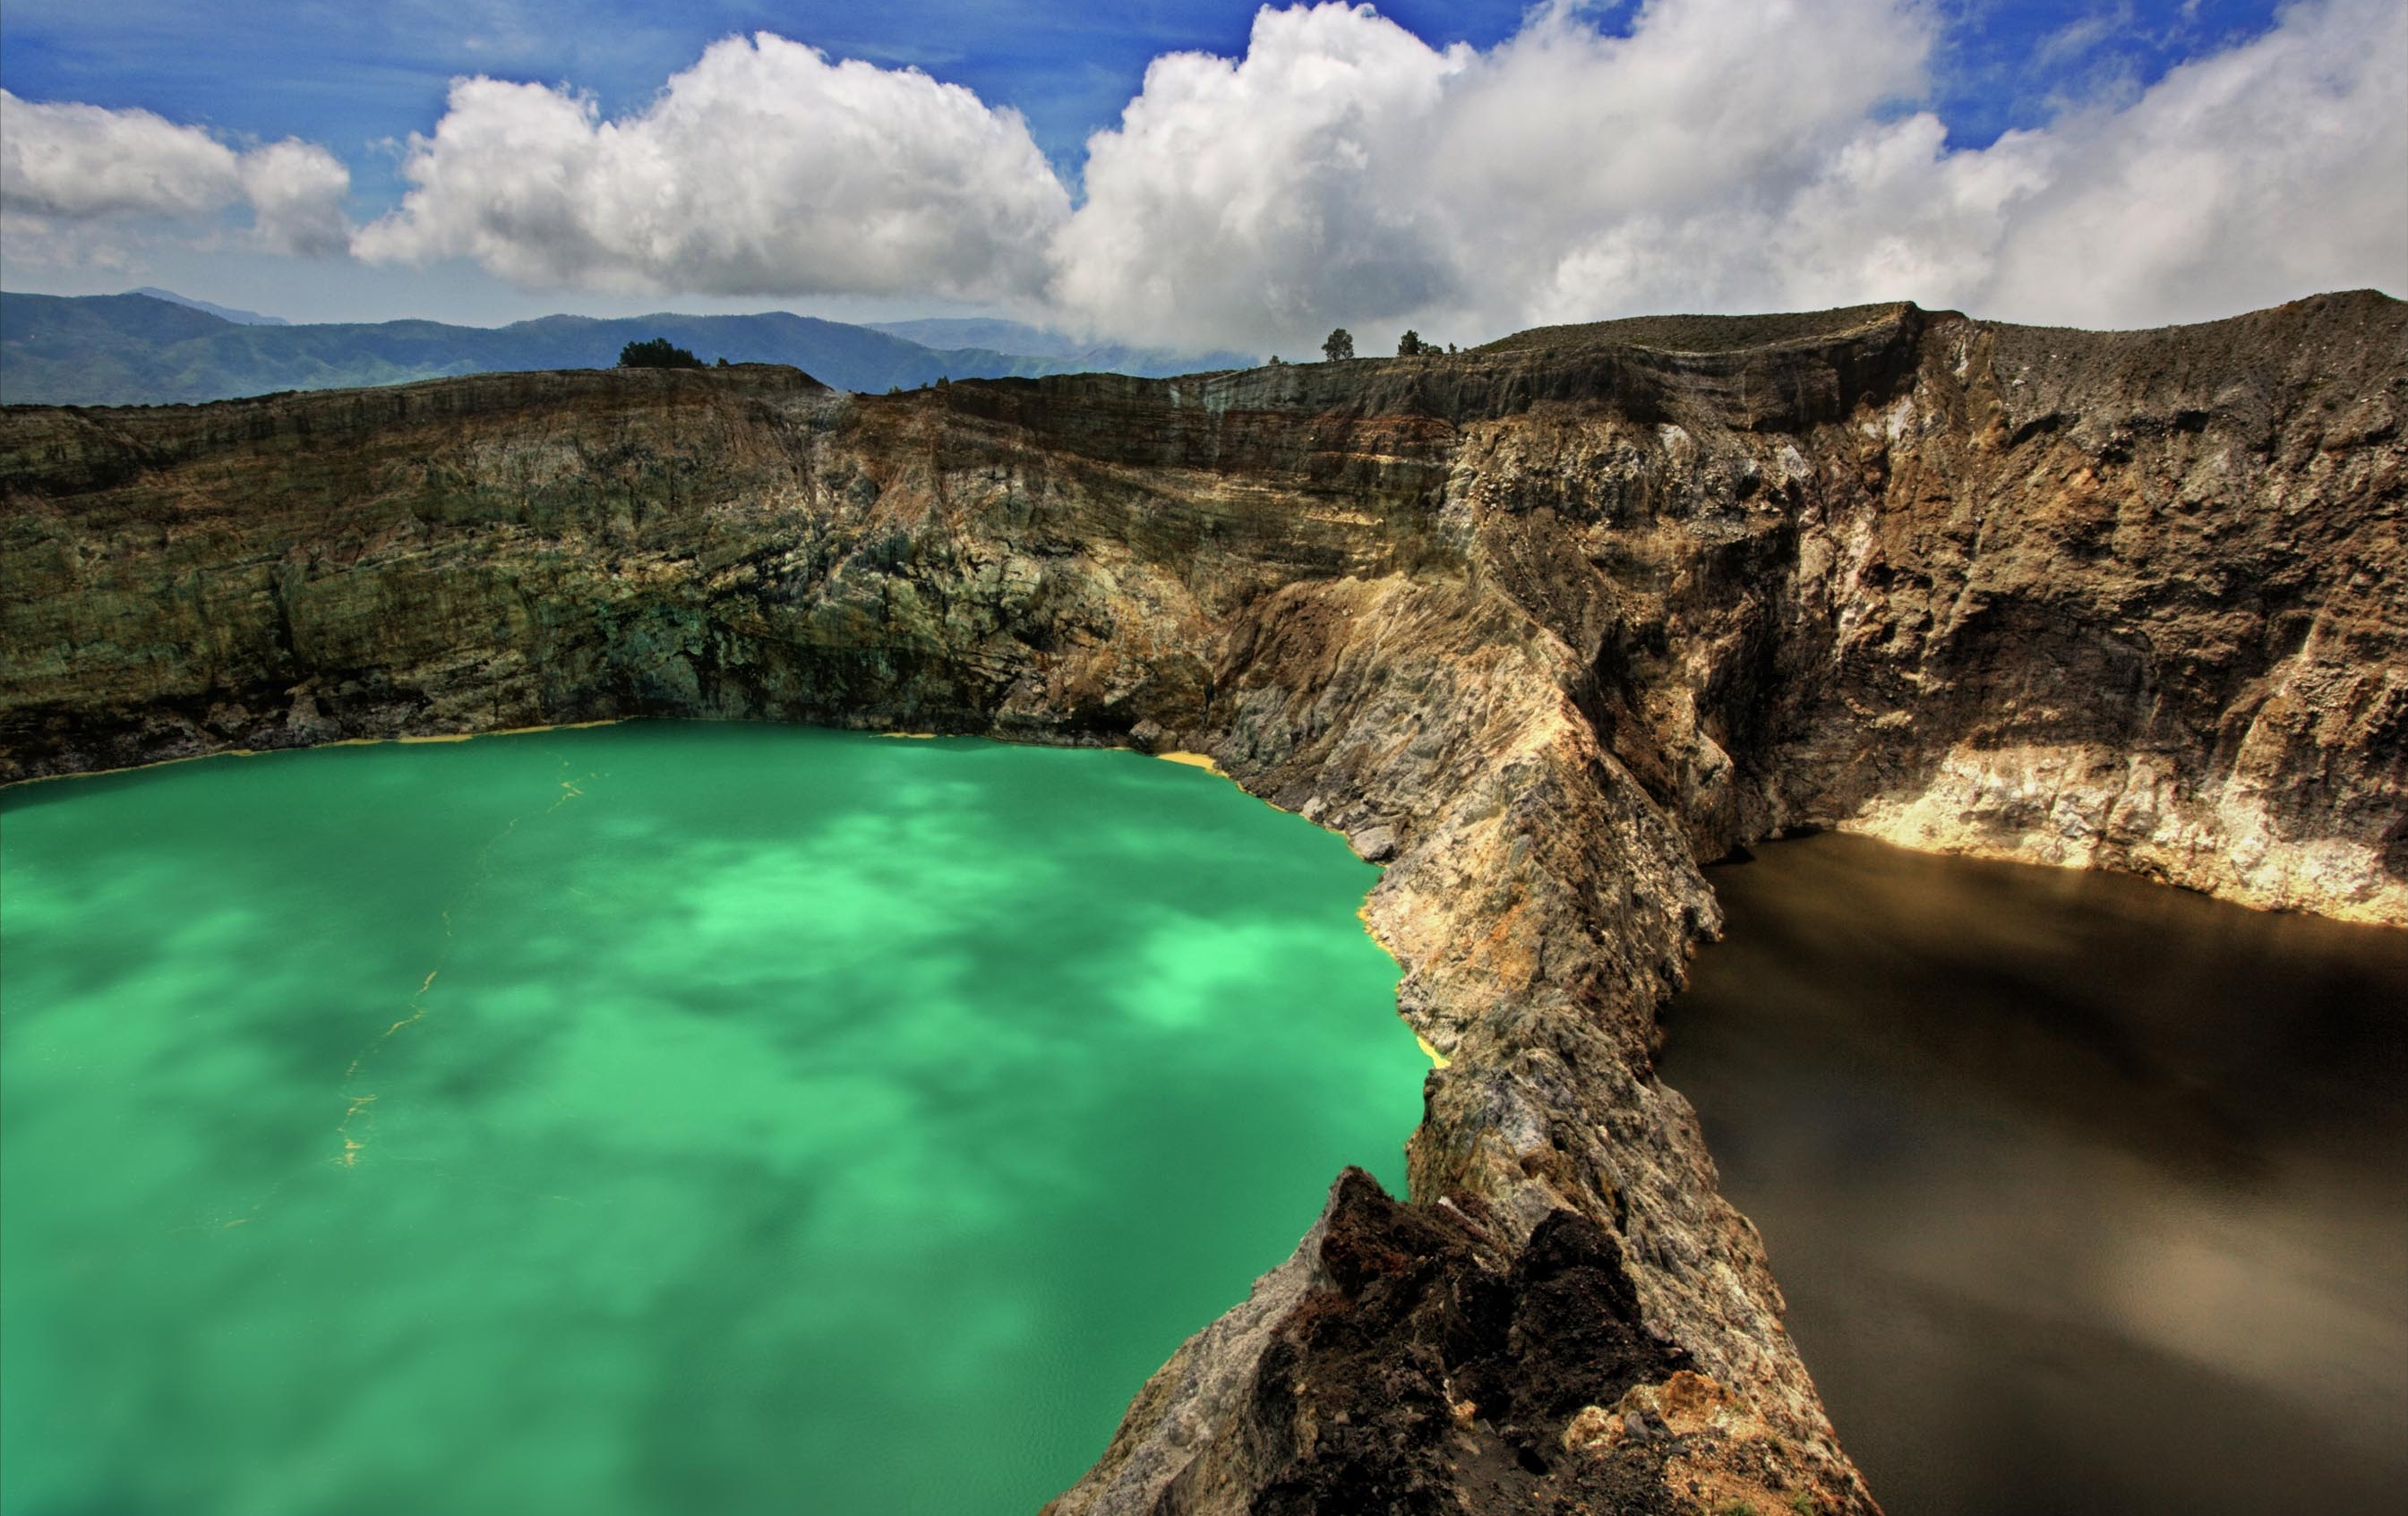 asia travel spots, Kelimutu National Park